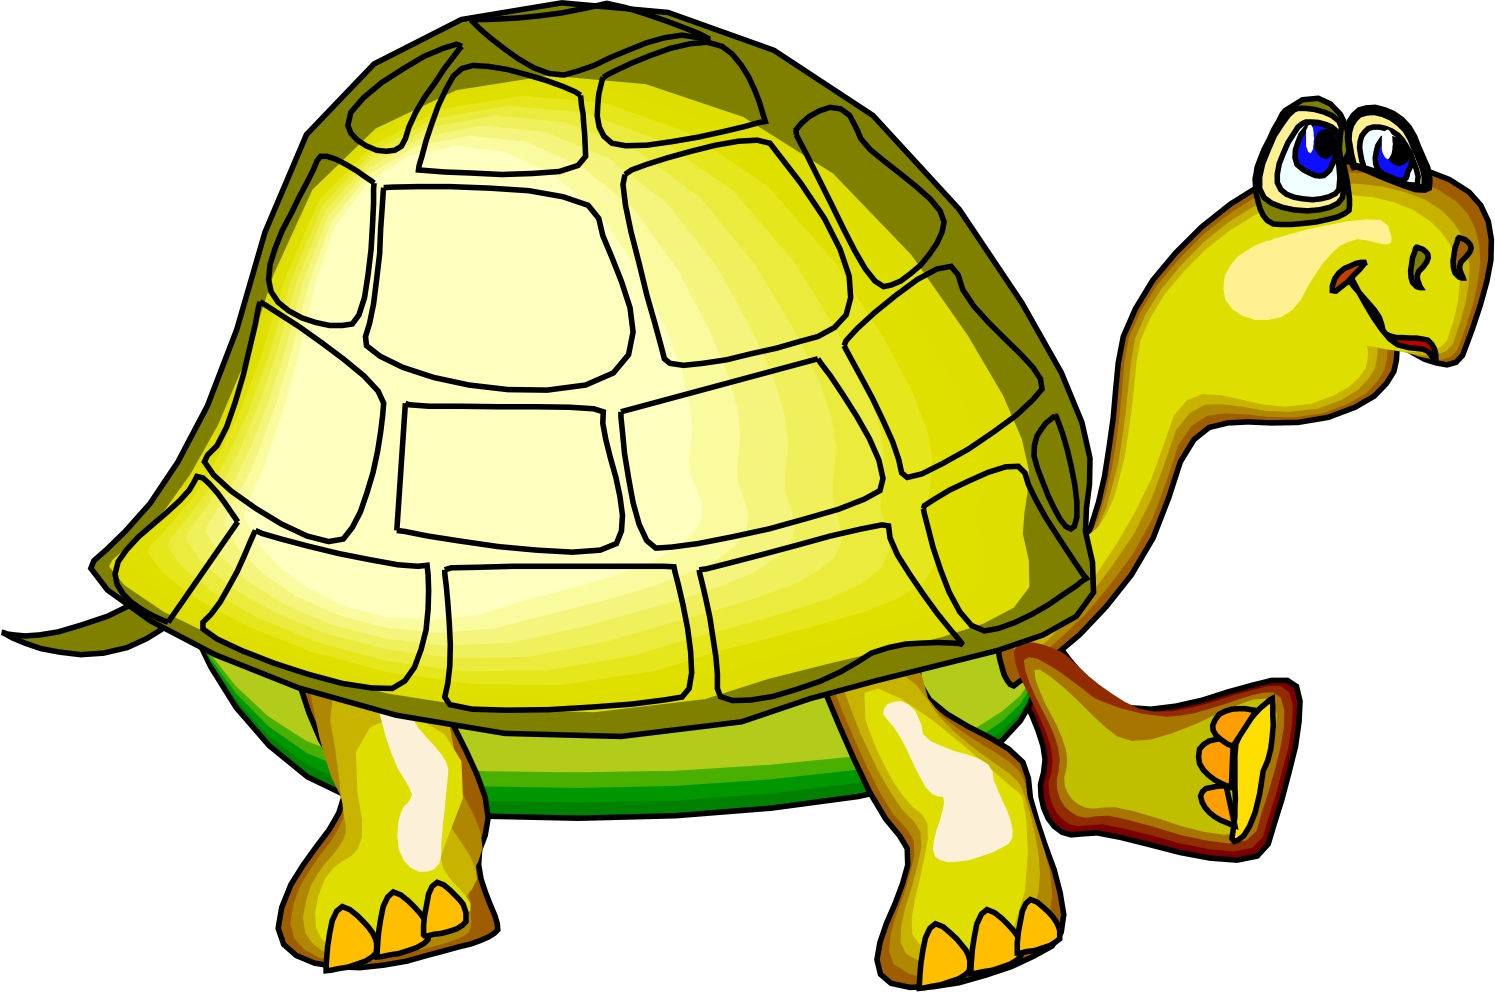 Free Turtle Images Cartoon, Download Free Clip Art, Free.